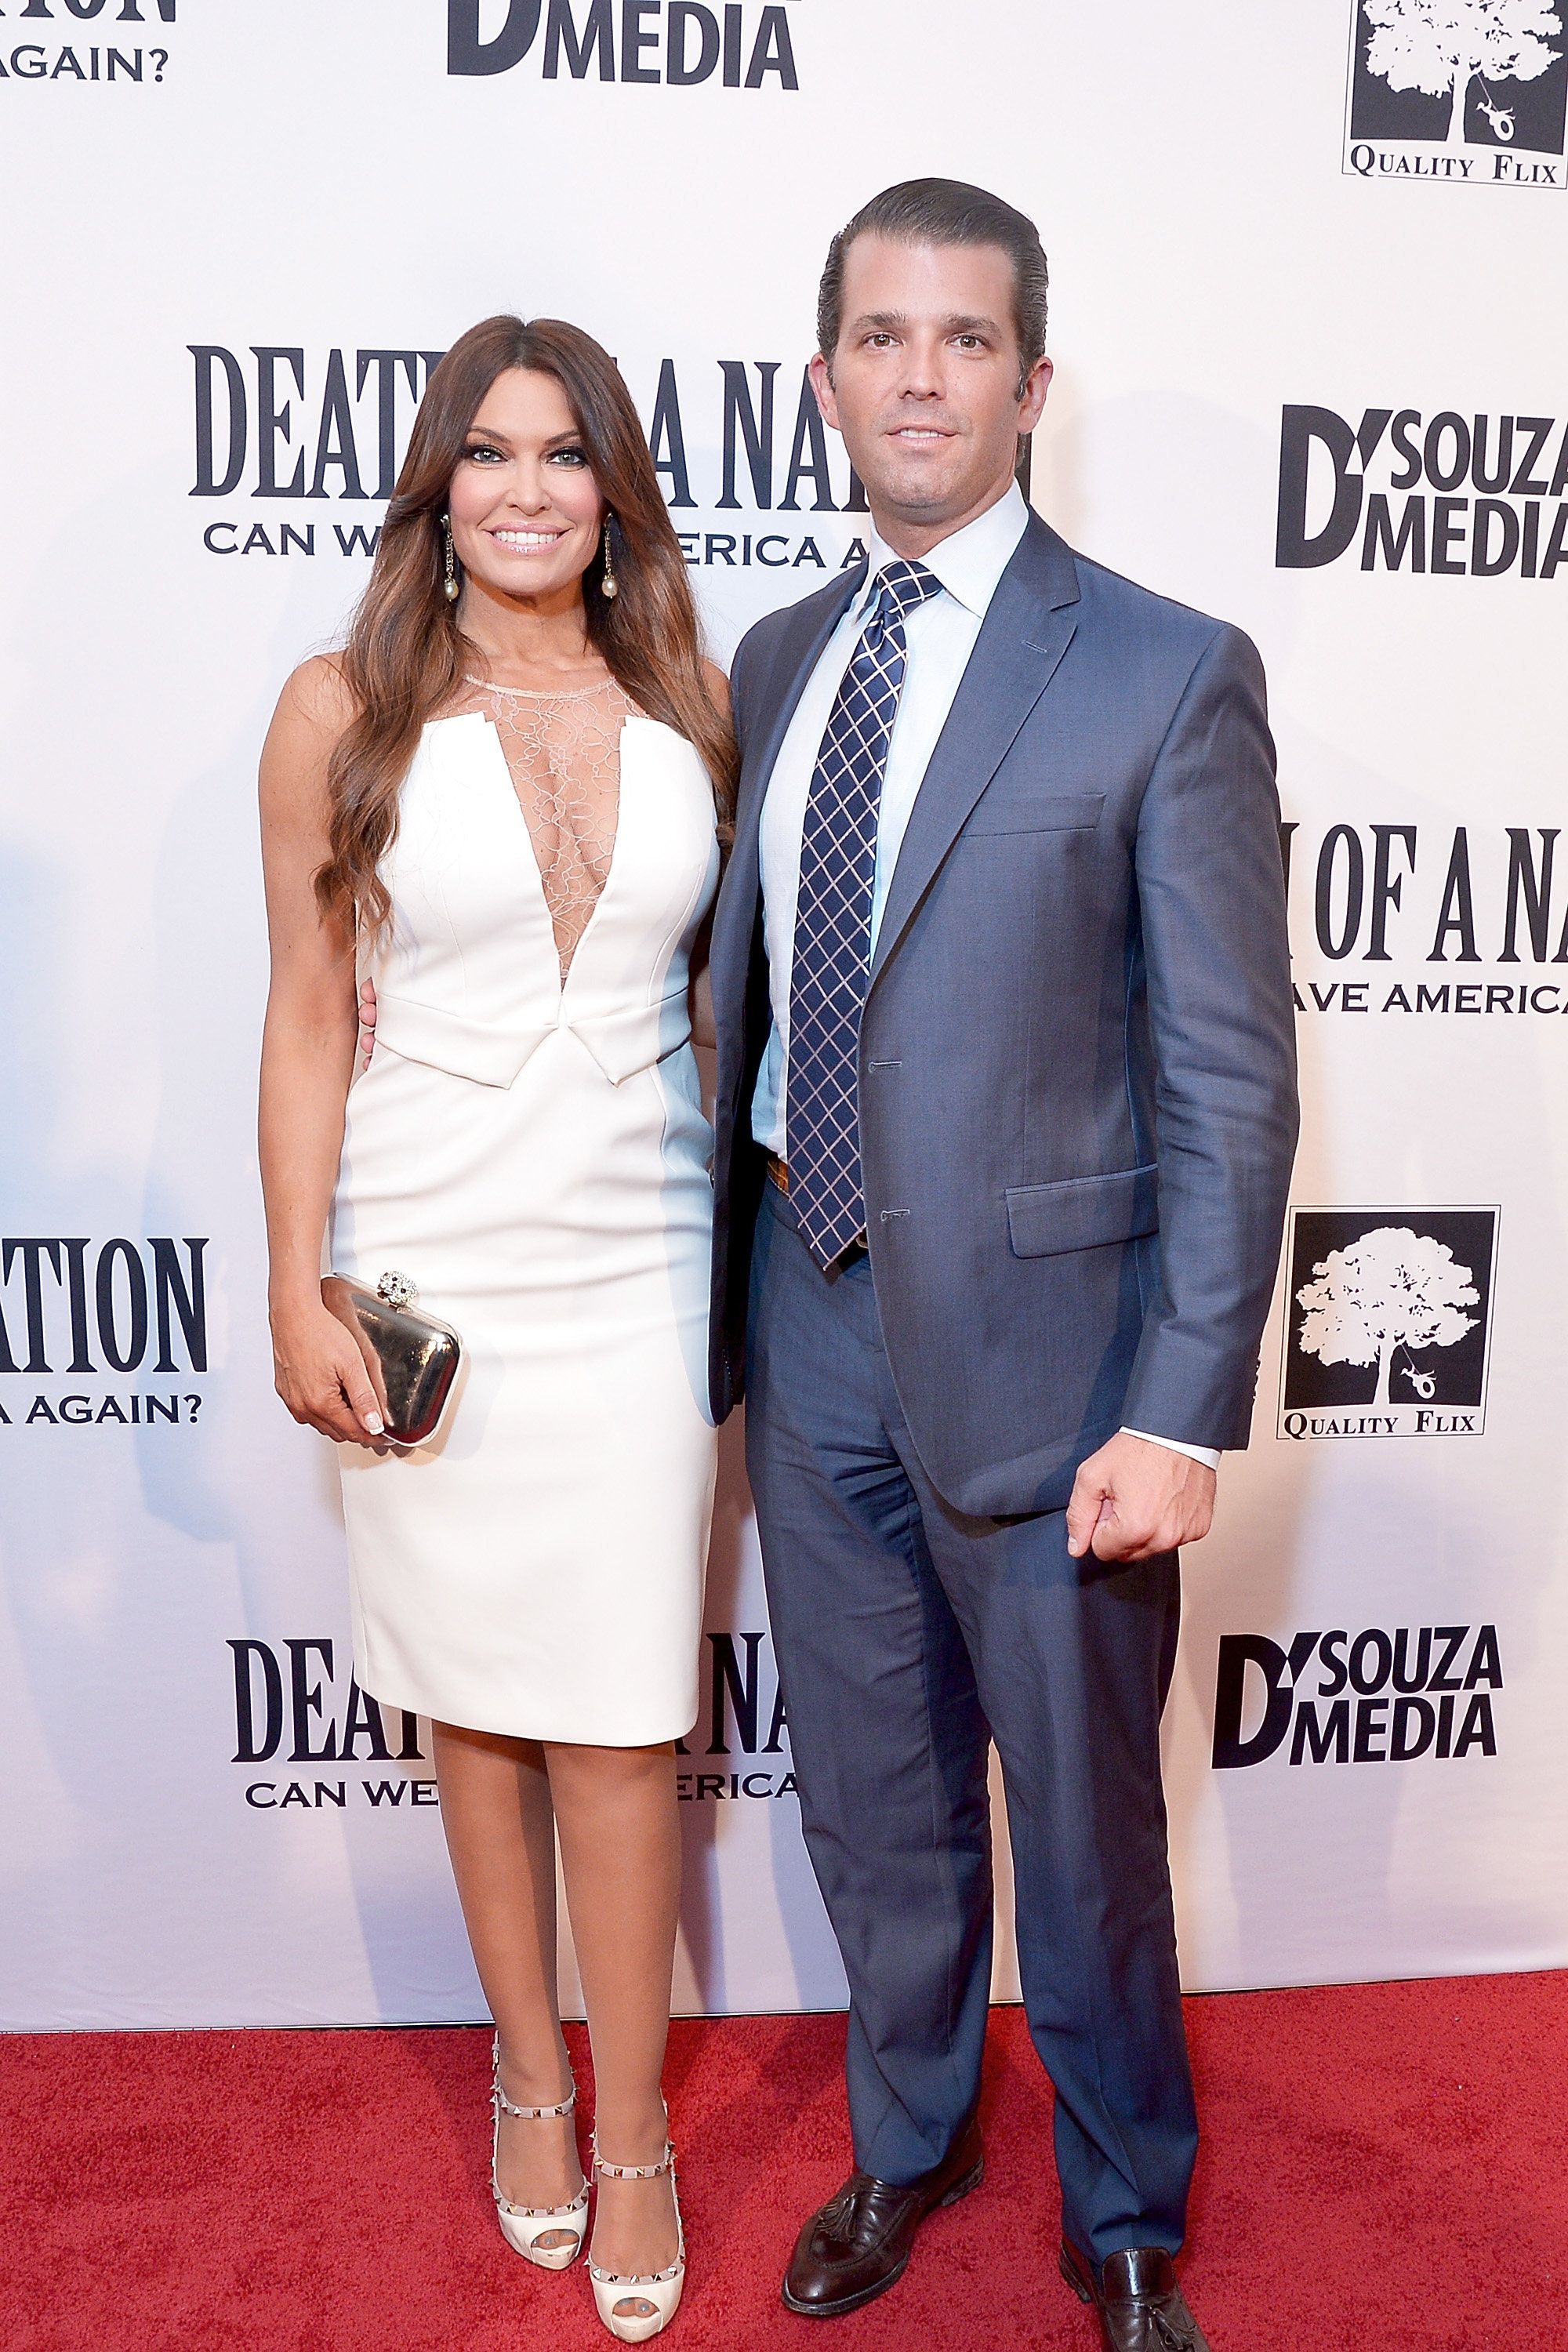 WASHINGTON, DC - AUGUST 01:  Donald Trump, Jr. and Kimberly Guilfoyle attend the DC premiere of the film, 'Death of a Nation,' at E Street Cinema on August 1, 2018 in Washington, DC.  (Photo by Shannon Finney/Getty Images)